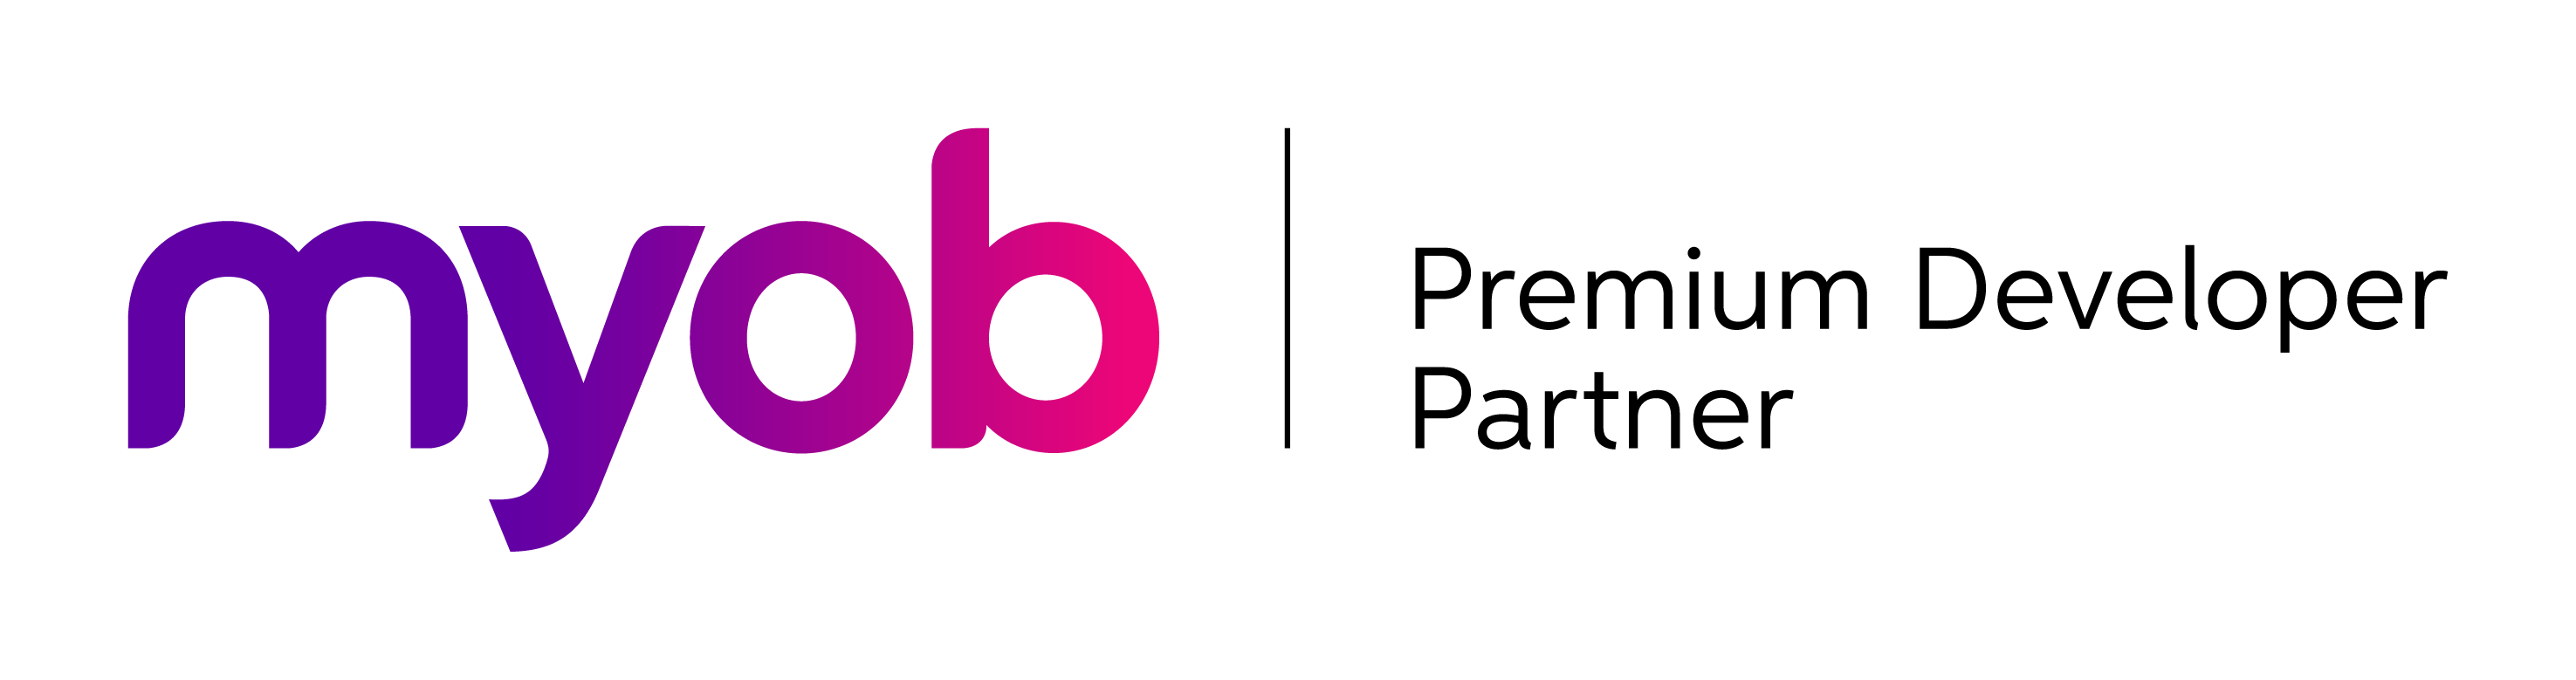 <H1> MYOB Deveoper Partner</H1>